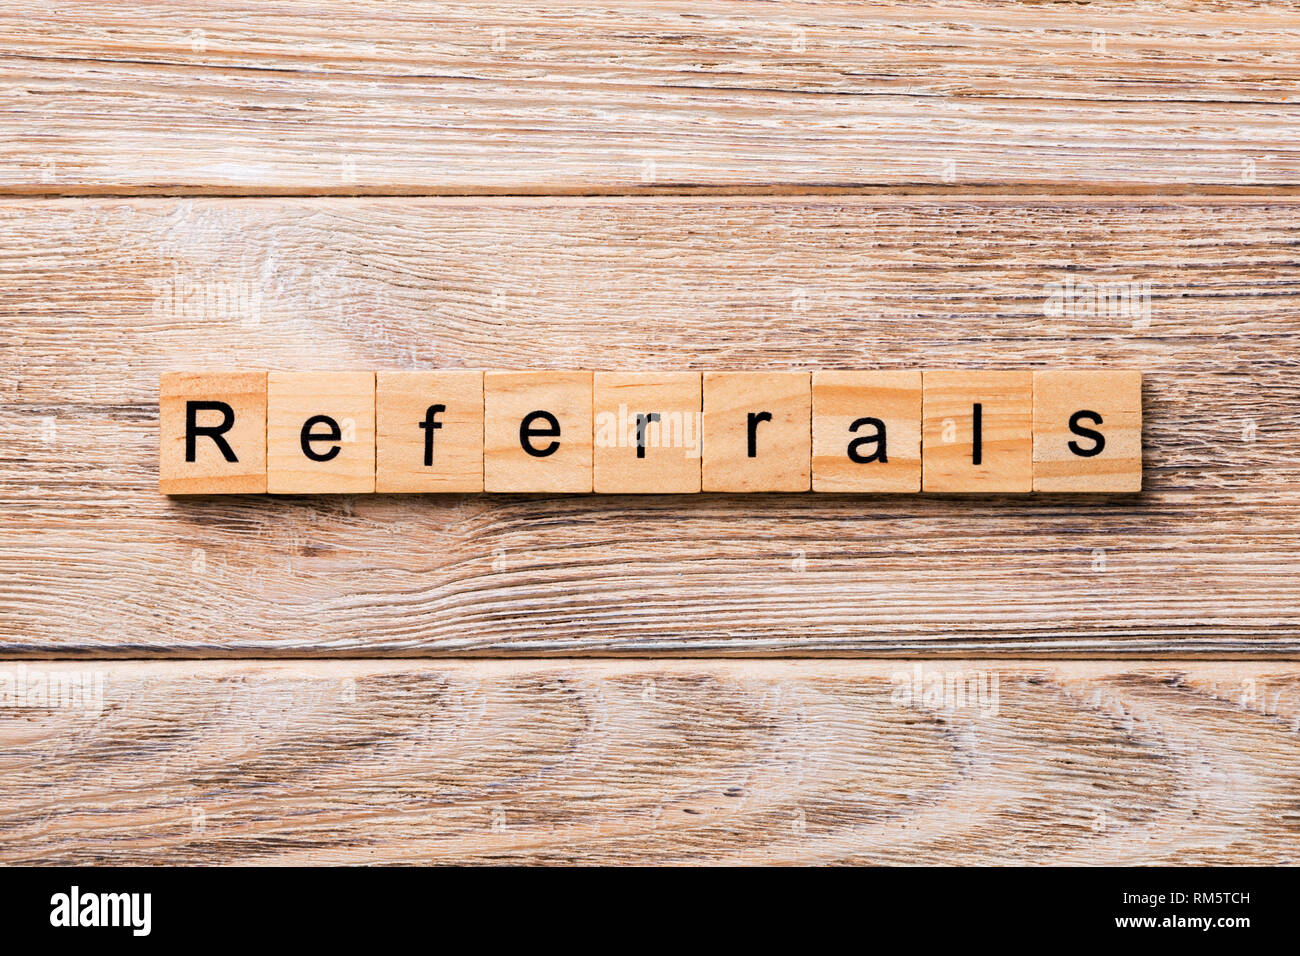 REFERRALS word written on wood block. REFERRALS text on wooden table for your desing, concept. - Stock Image